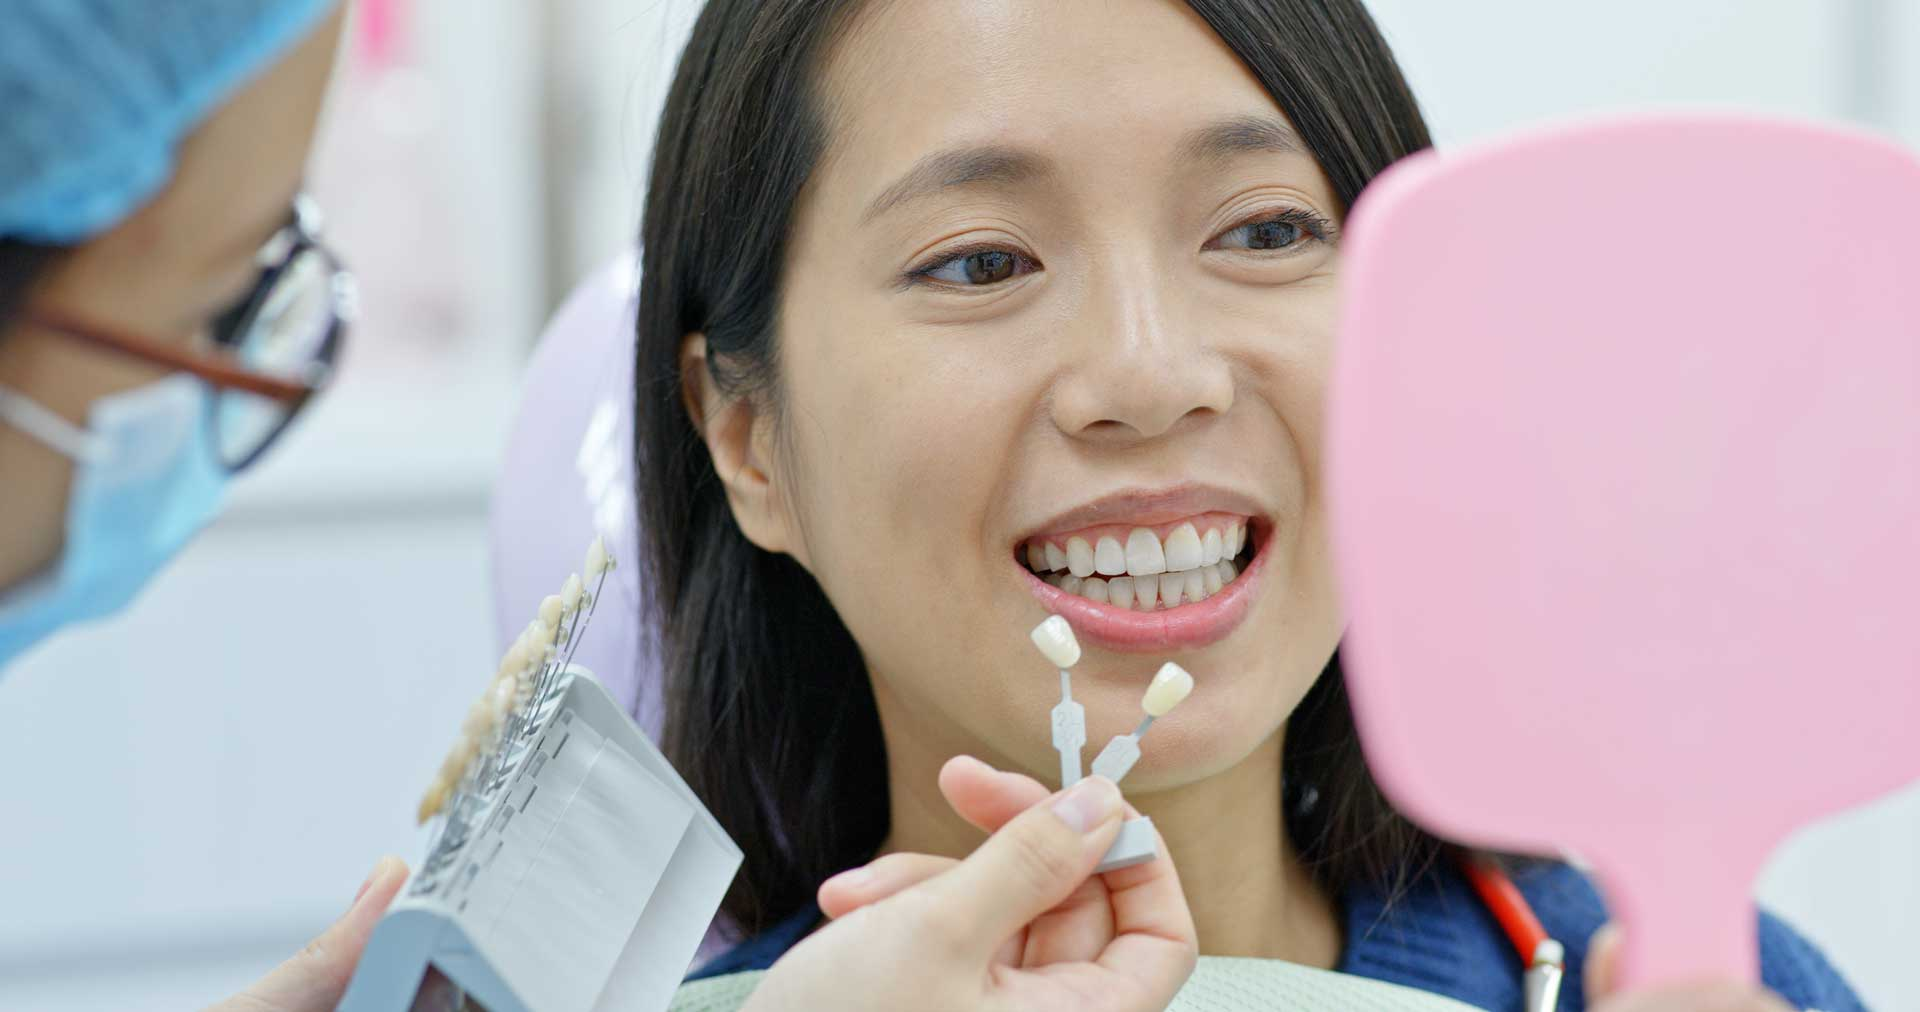 asian woman getting her teeth professionally whitened at a dental clinic in Singapore